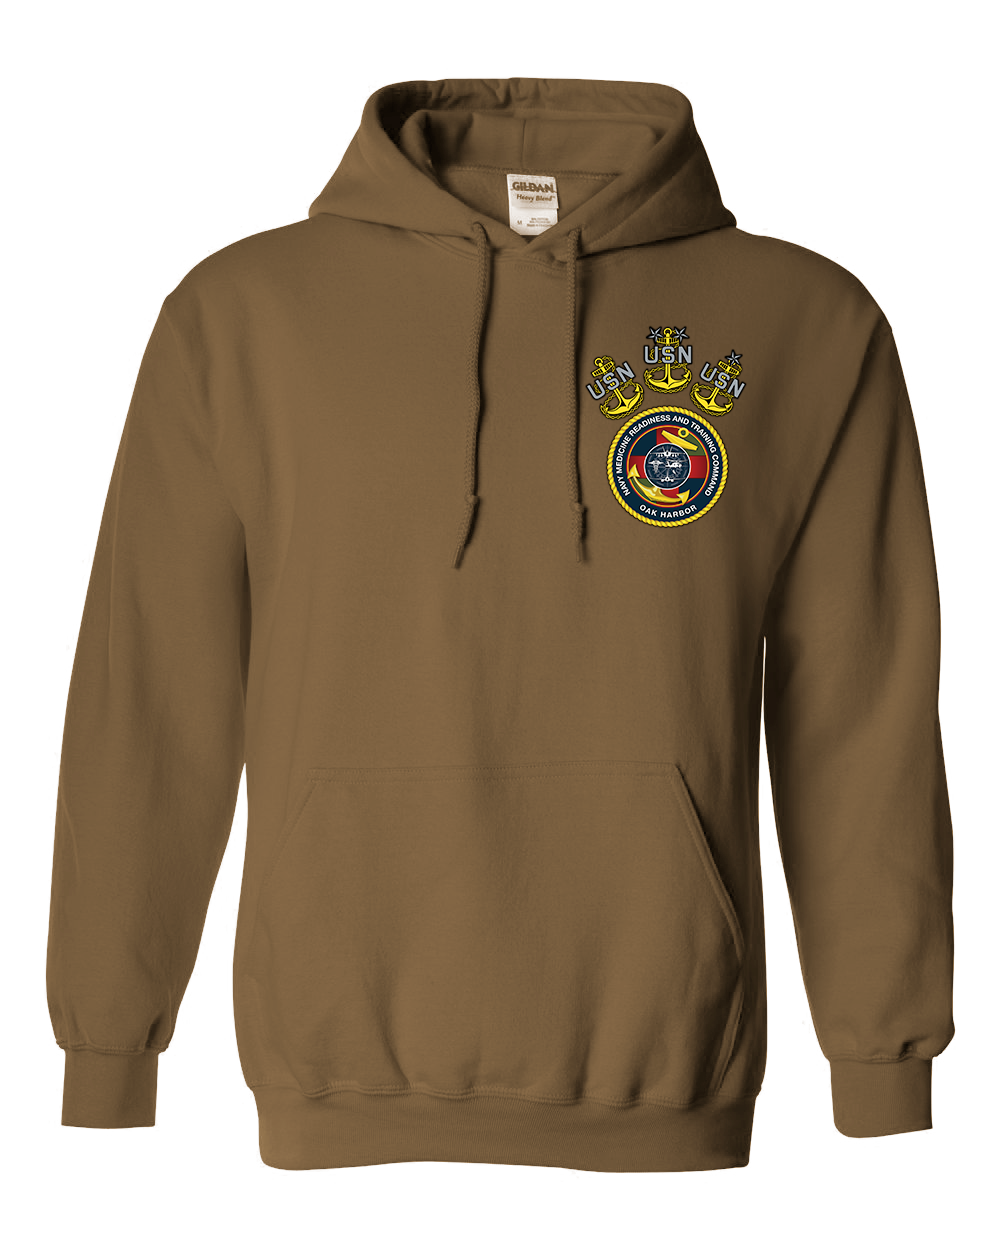 NMRTC Oak Harbor Rothco Concealed Carry Hoodie